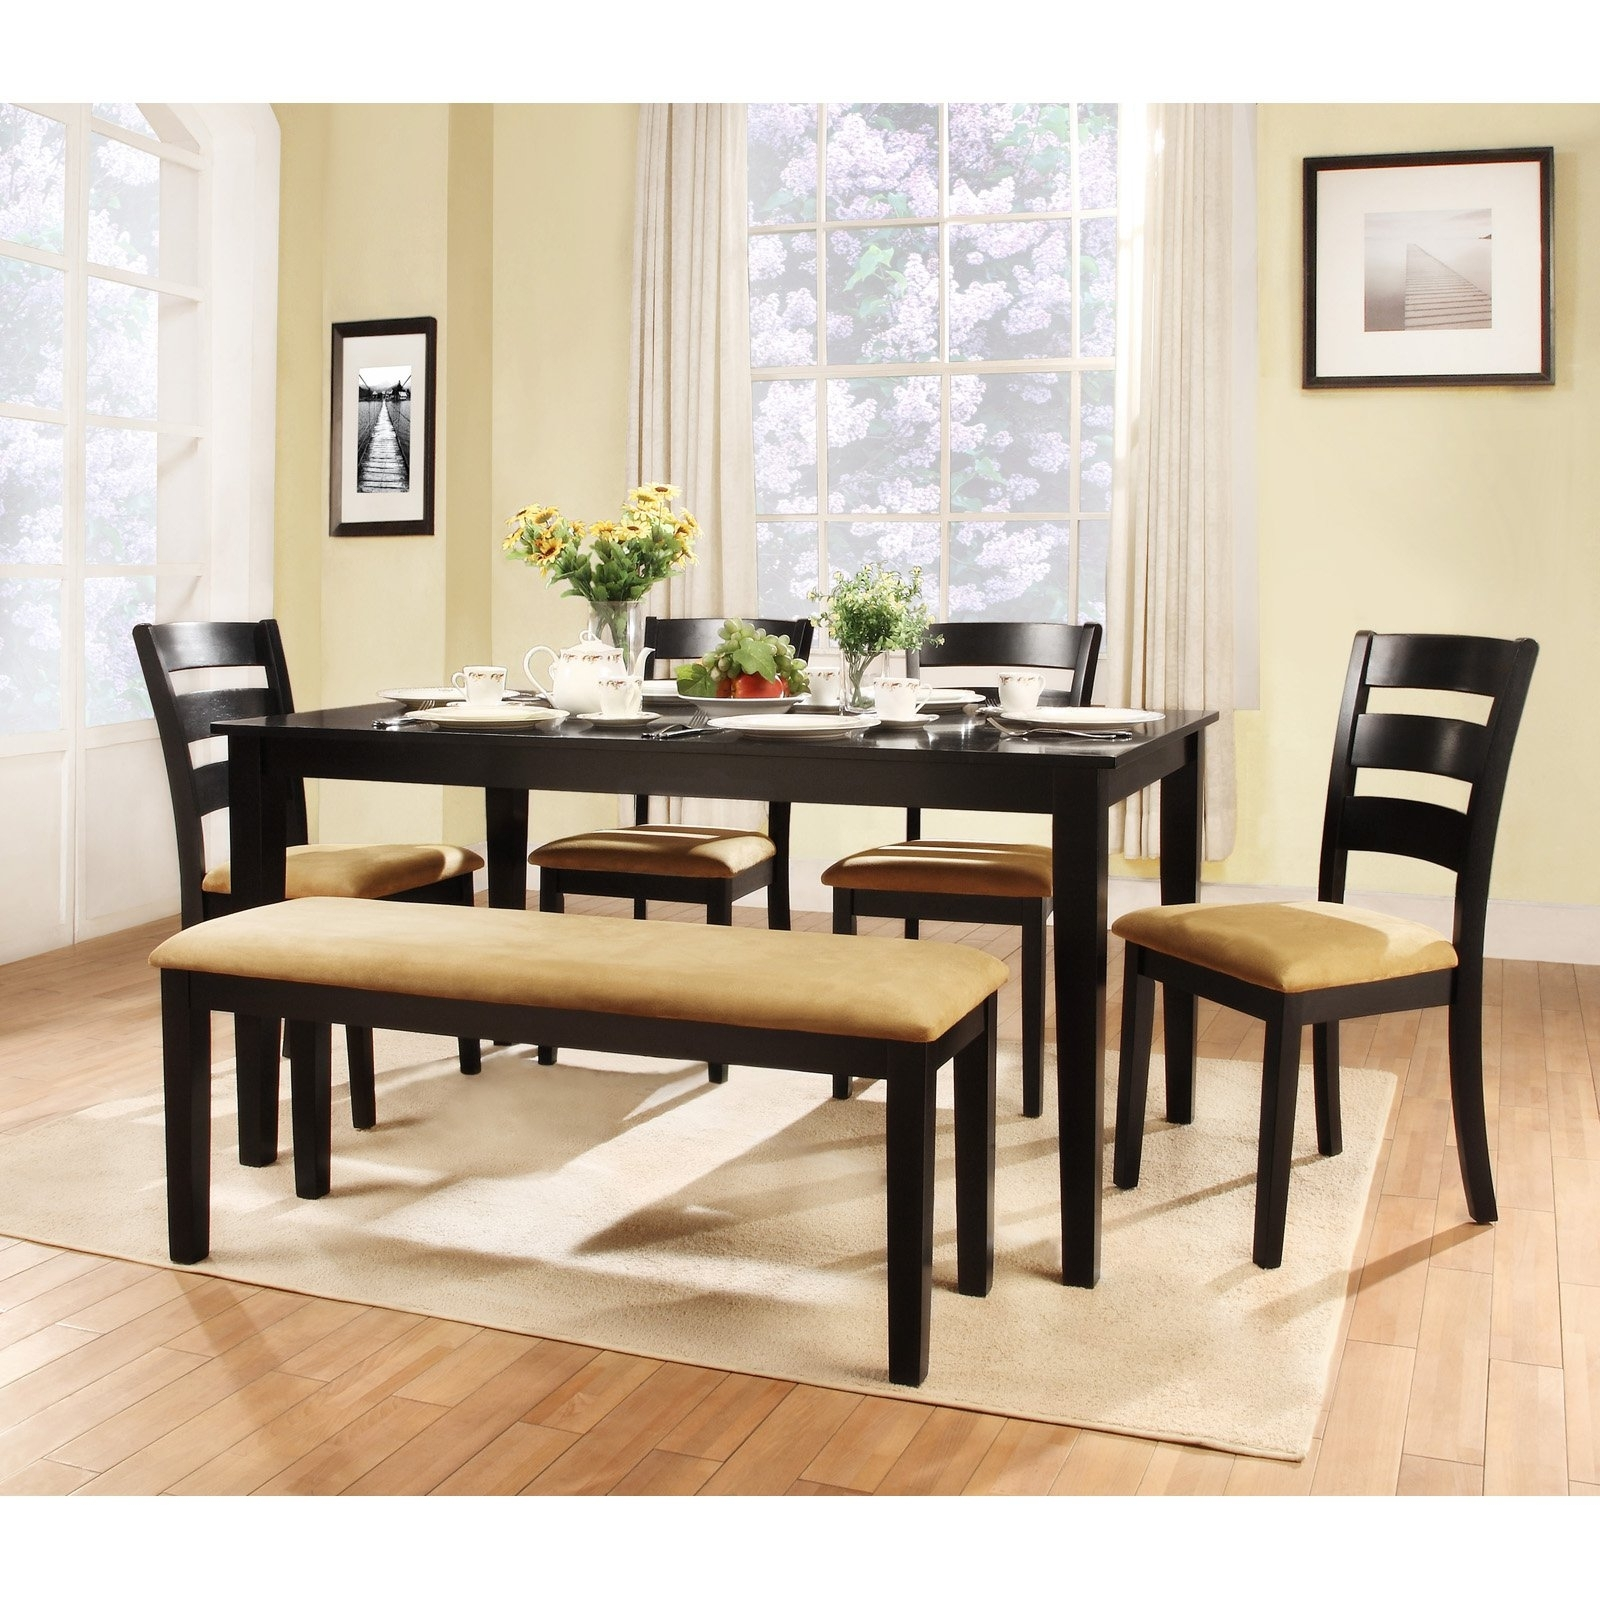 Dining Tables Bench Seat With Back with Well-liked Homelegance Tibalt 6 Pc. Rectangle Black Dining Table Set - 60 In